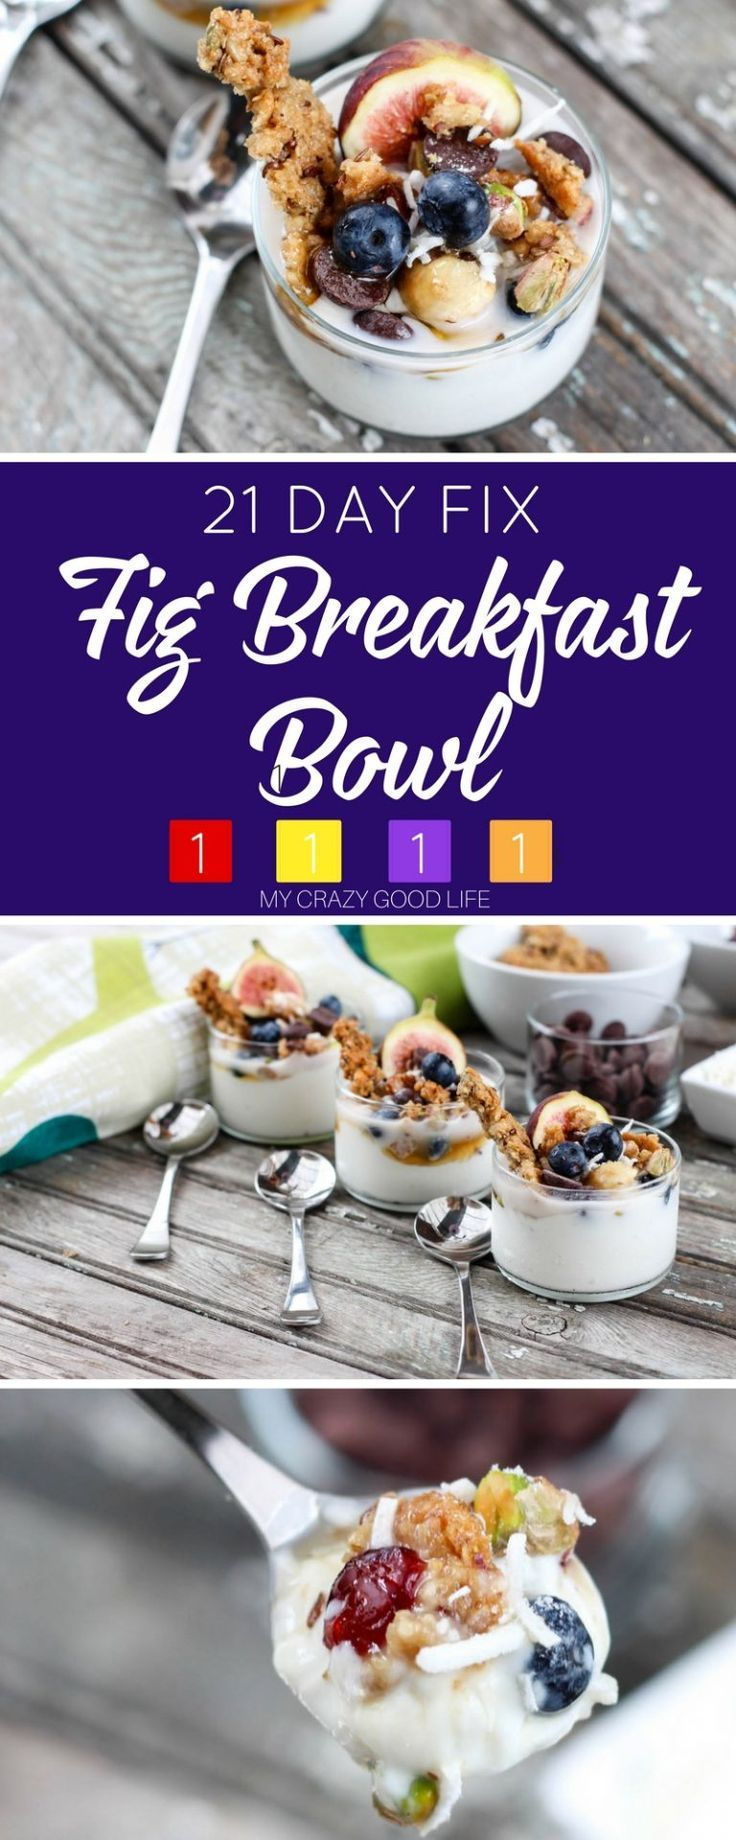 They say that the first meal of the day is the most important one...celebrate in style with this delicious and healthy fig breakfast bowl! Updated to include 21 Day Fix ingredients and container counts.